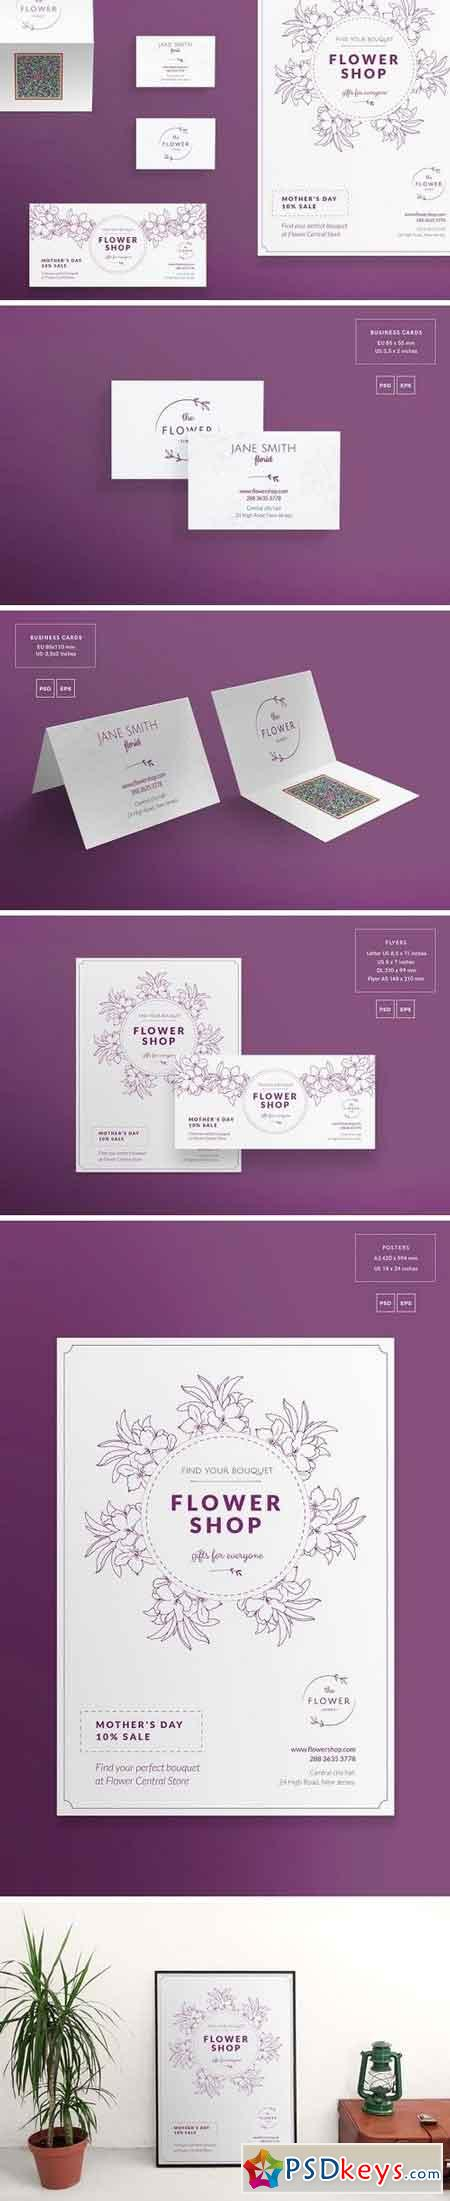 Print Pack Flower Shop 1495443